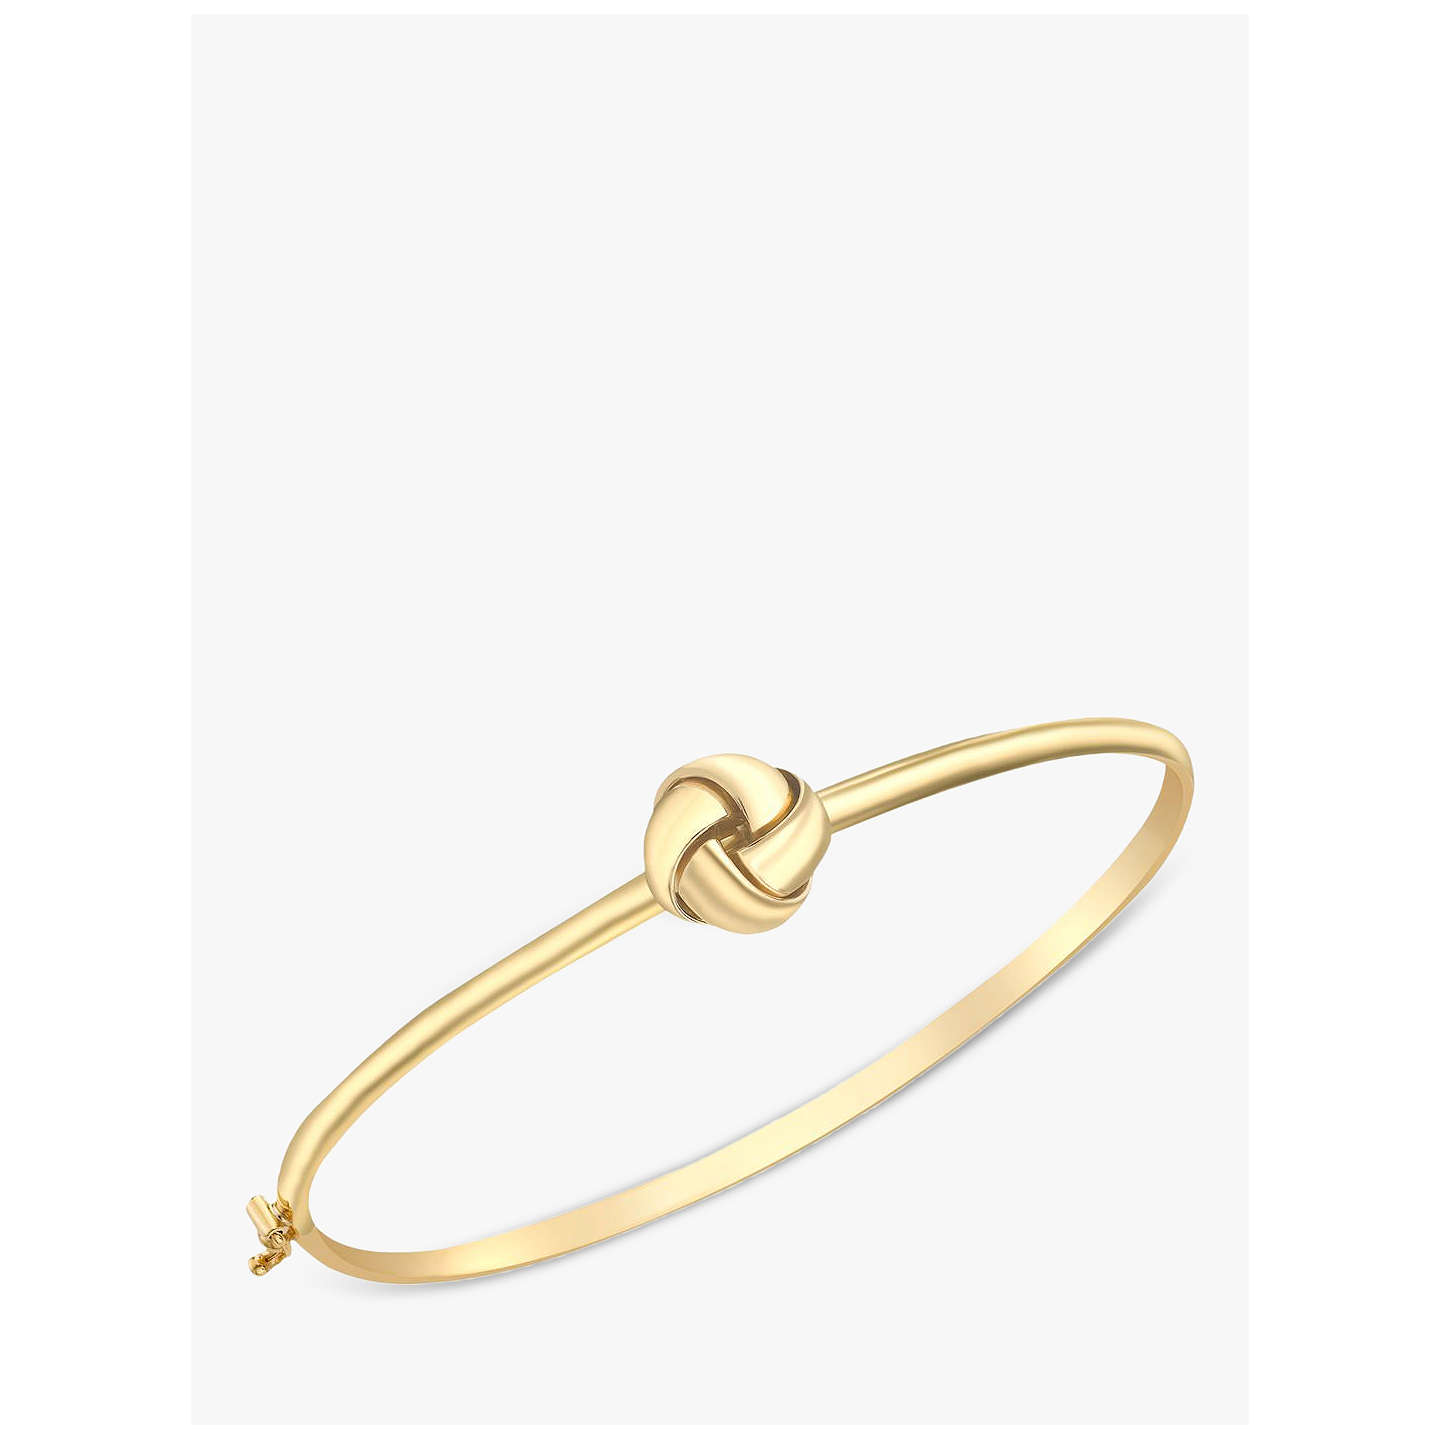 swarovski lifelong bangle rose create m bangles gold knot size account an plated